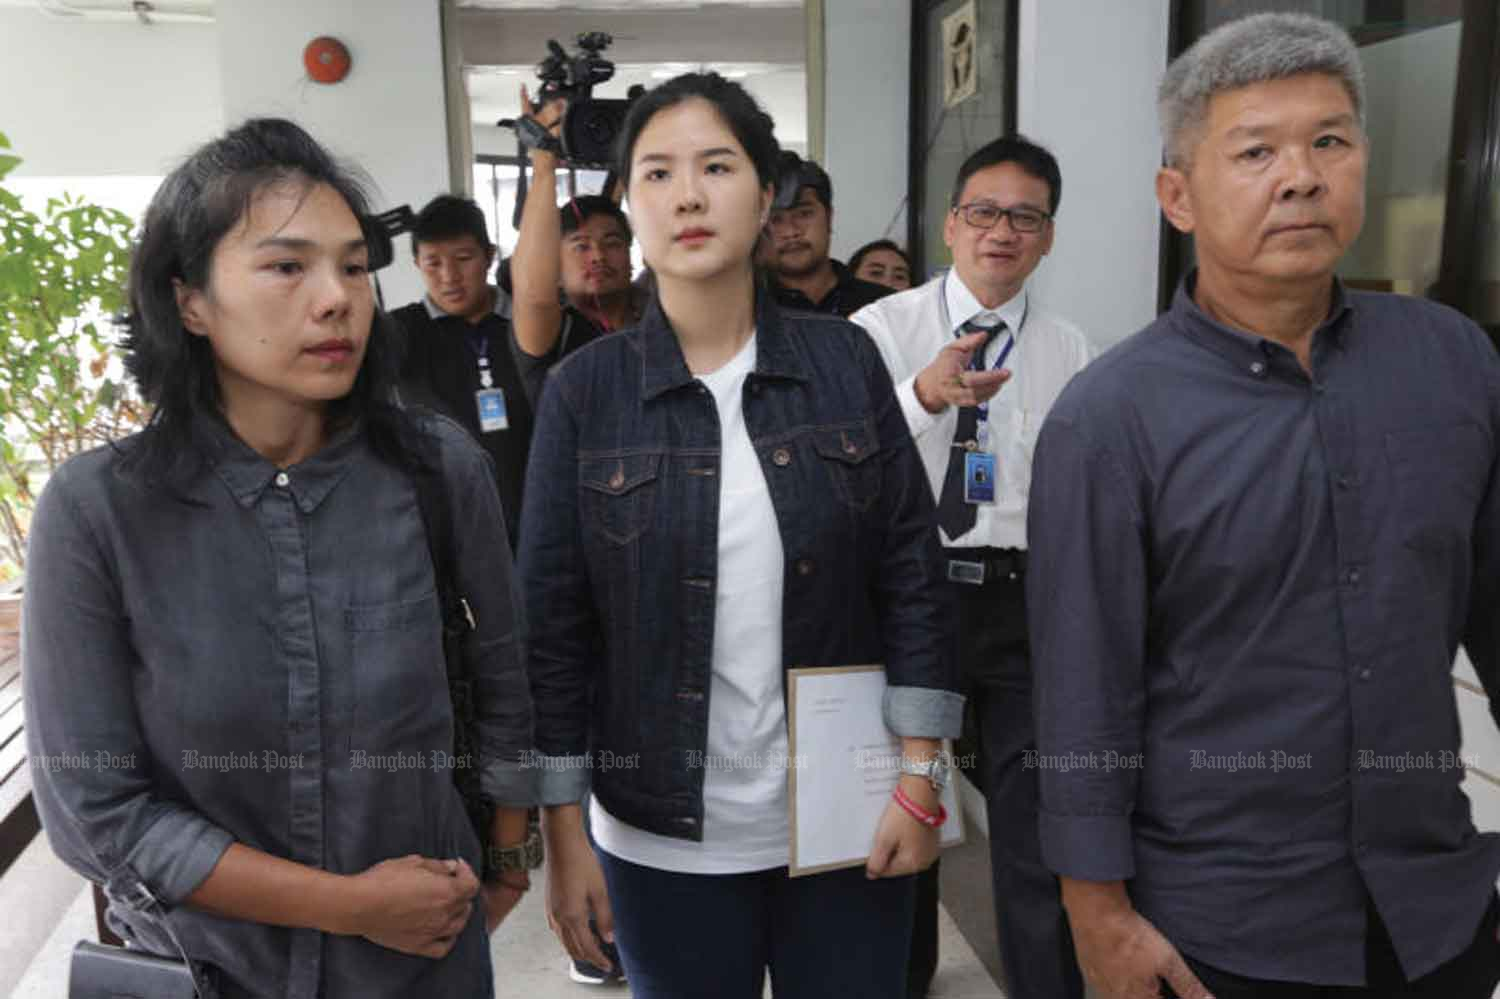 The family of military cadet Pakapong Tanyakan at the Medical Council of Thailand in Nonthaburi province in August 2018, when they filed a complaint about the autopsy report on their son. (File photo: Wichan Charoenkiatpakul)